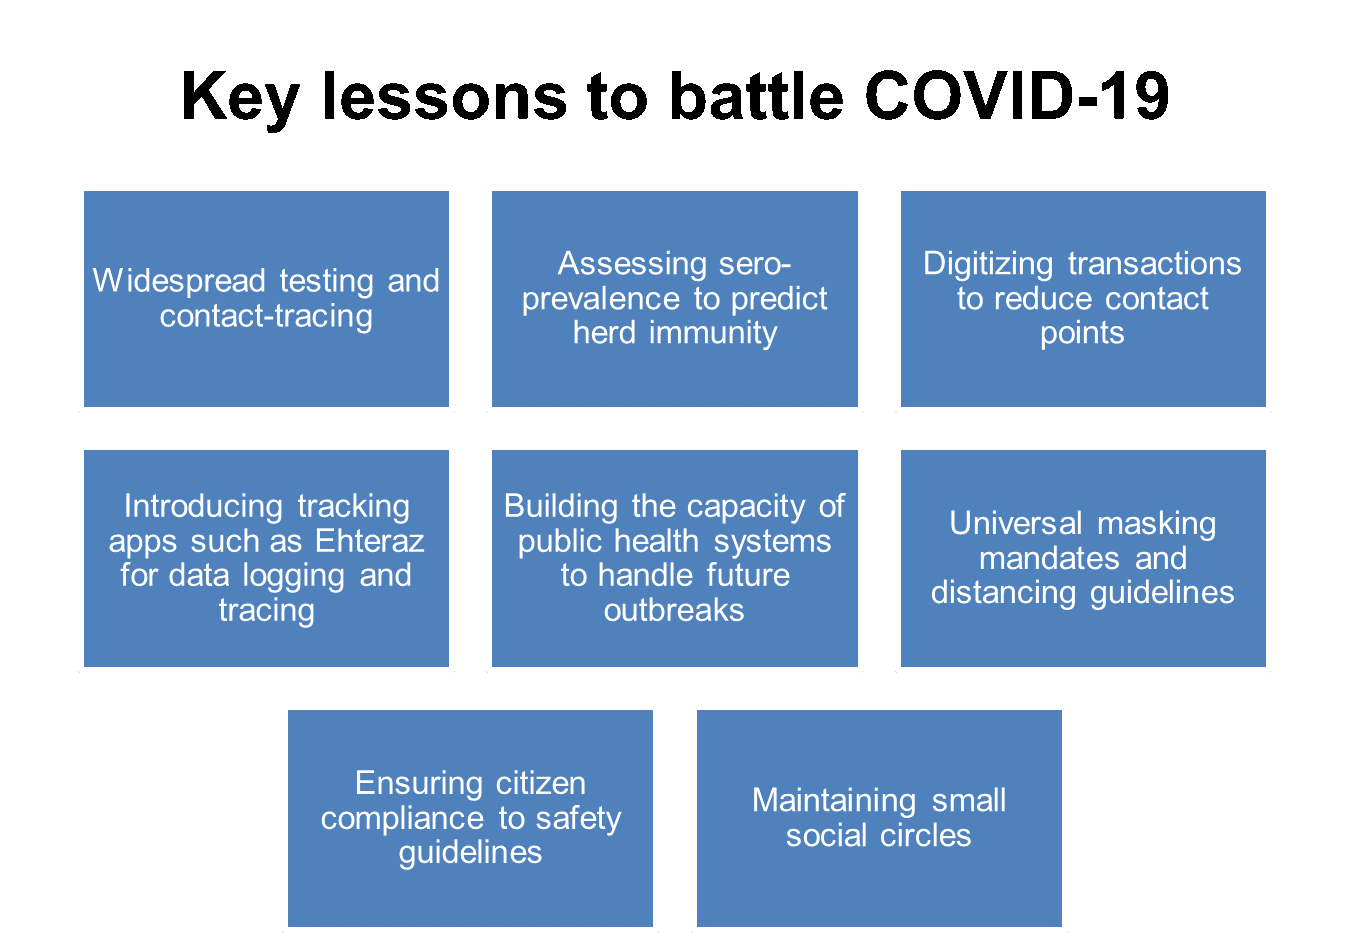 Figure 1. Key lessons from global lifting of COVID-19 restrictions